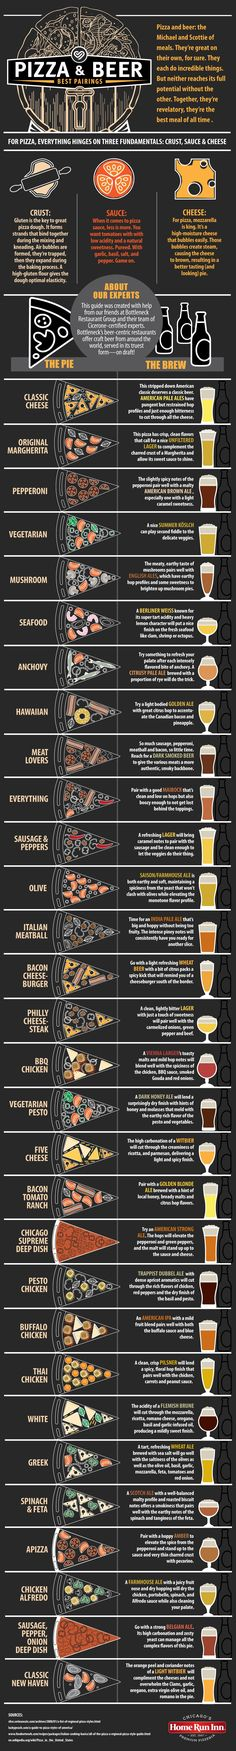 Beer is great and pizza is amazing, but when you have both at the same time it's one of the best meals known to man. Still, the subtle, nuanced flavors of different beers can be even better with the right pizza pairing.